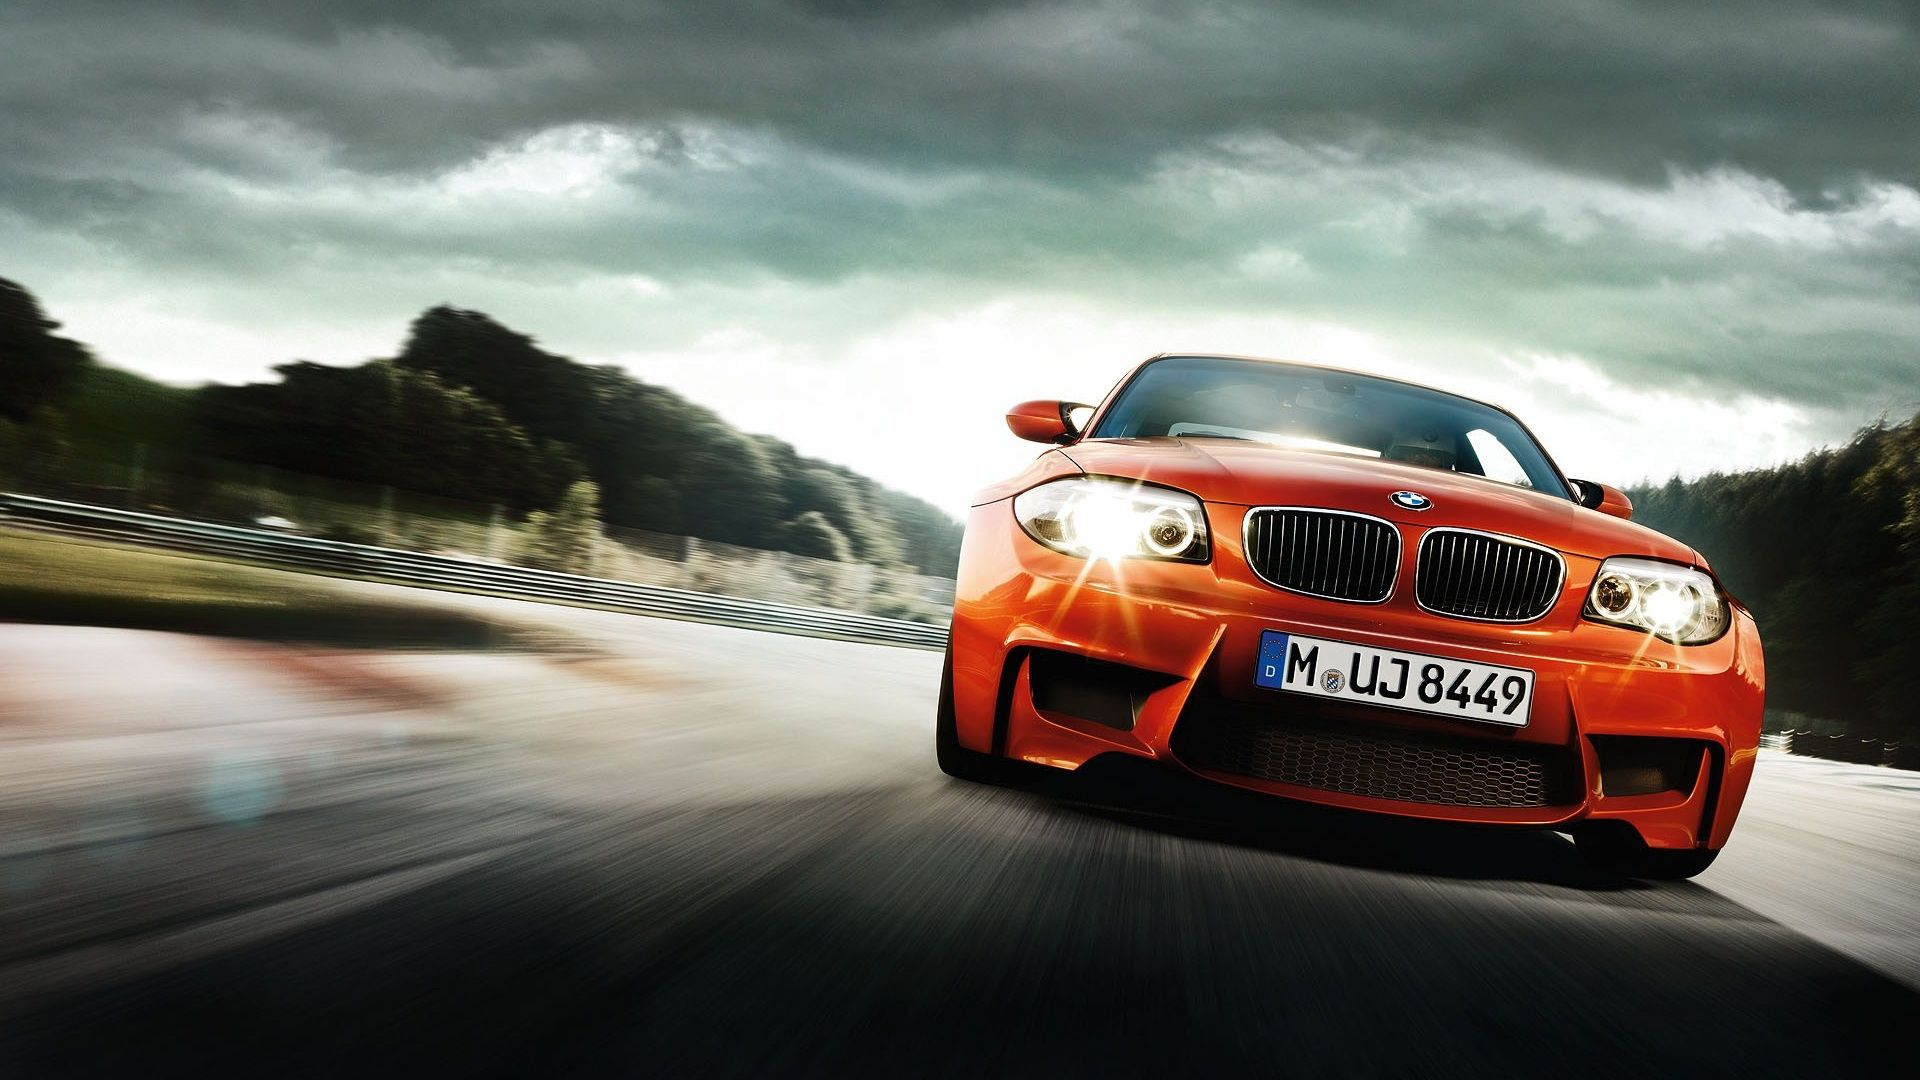 Free Download Bmw Car Hd Widescreen Wallpaper By Wonderfulengineeringcom 1920x1080 For Your Desktop Mobile Tablet Explore 50 Bmw Car Wallpapers Bmw Wallpaper Hd Bmw Background Wallpaper New Bmw Cars Wallpapers